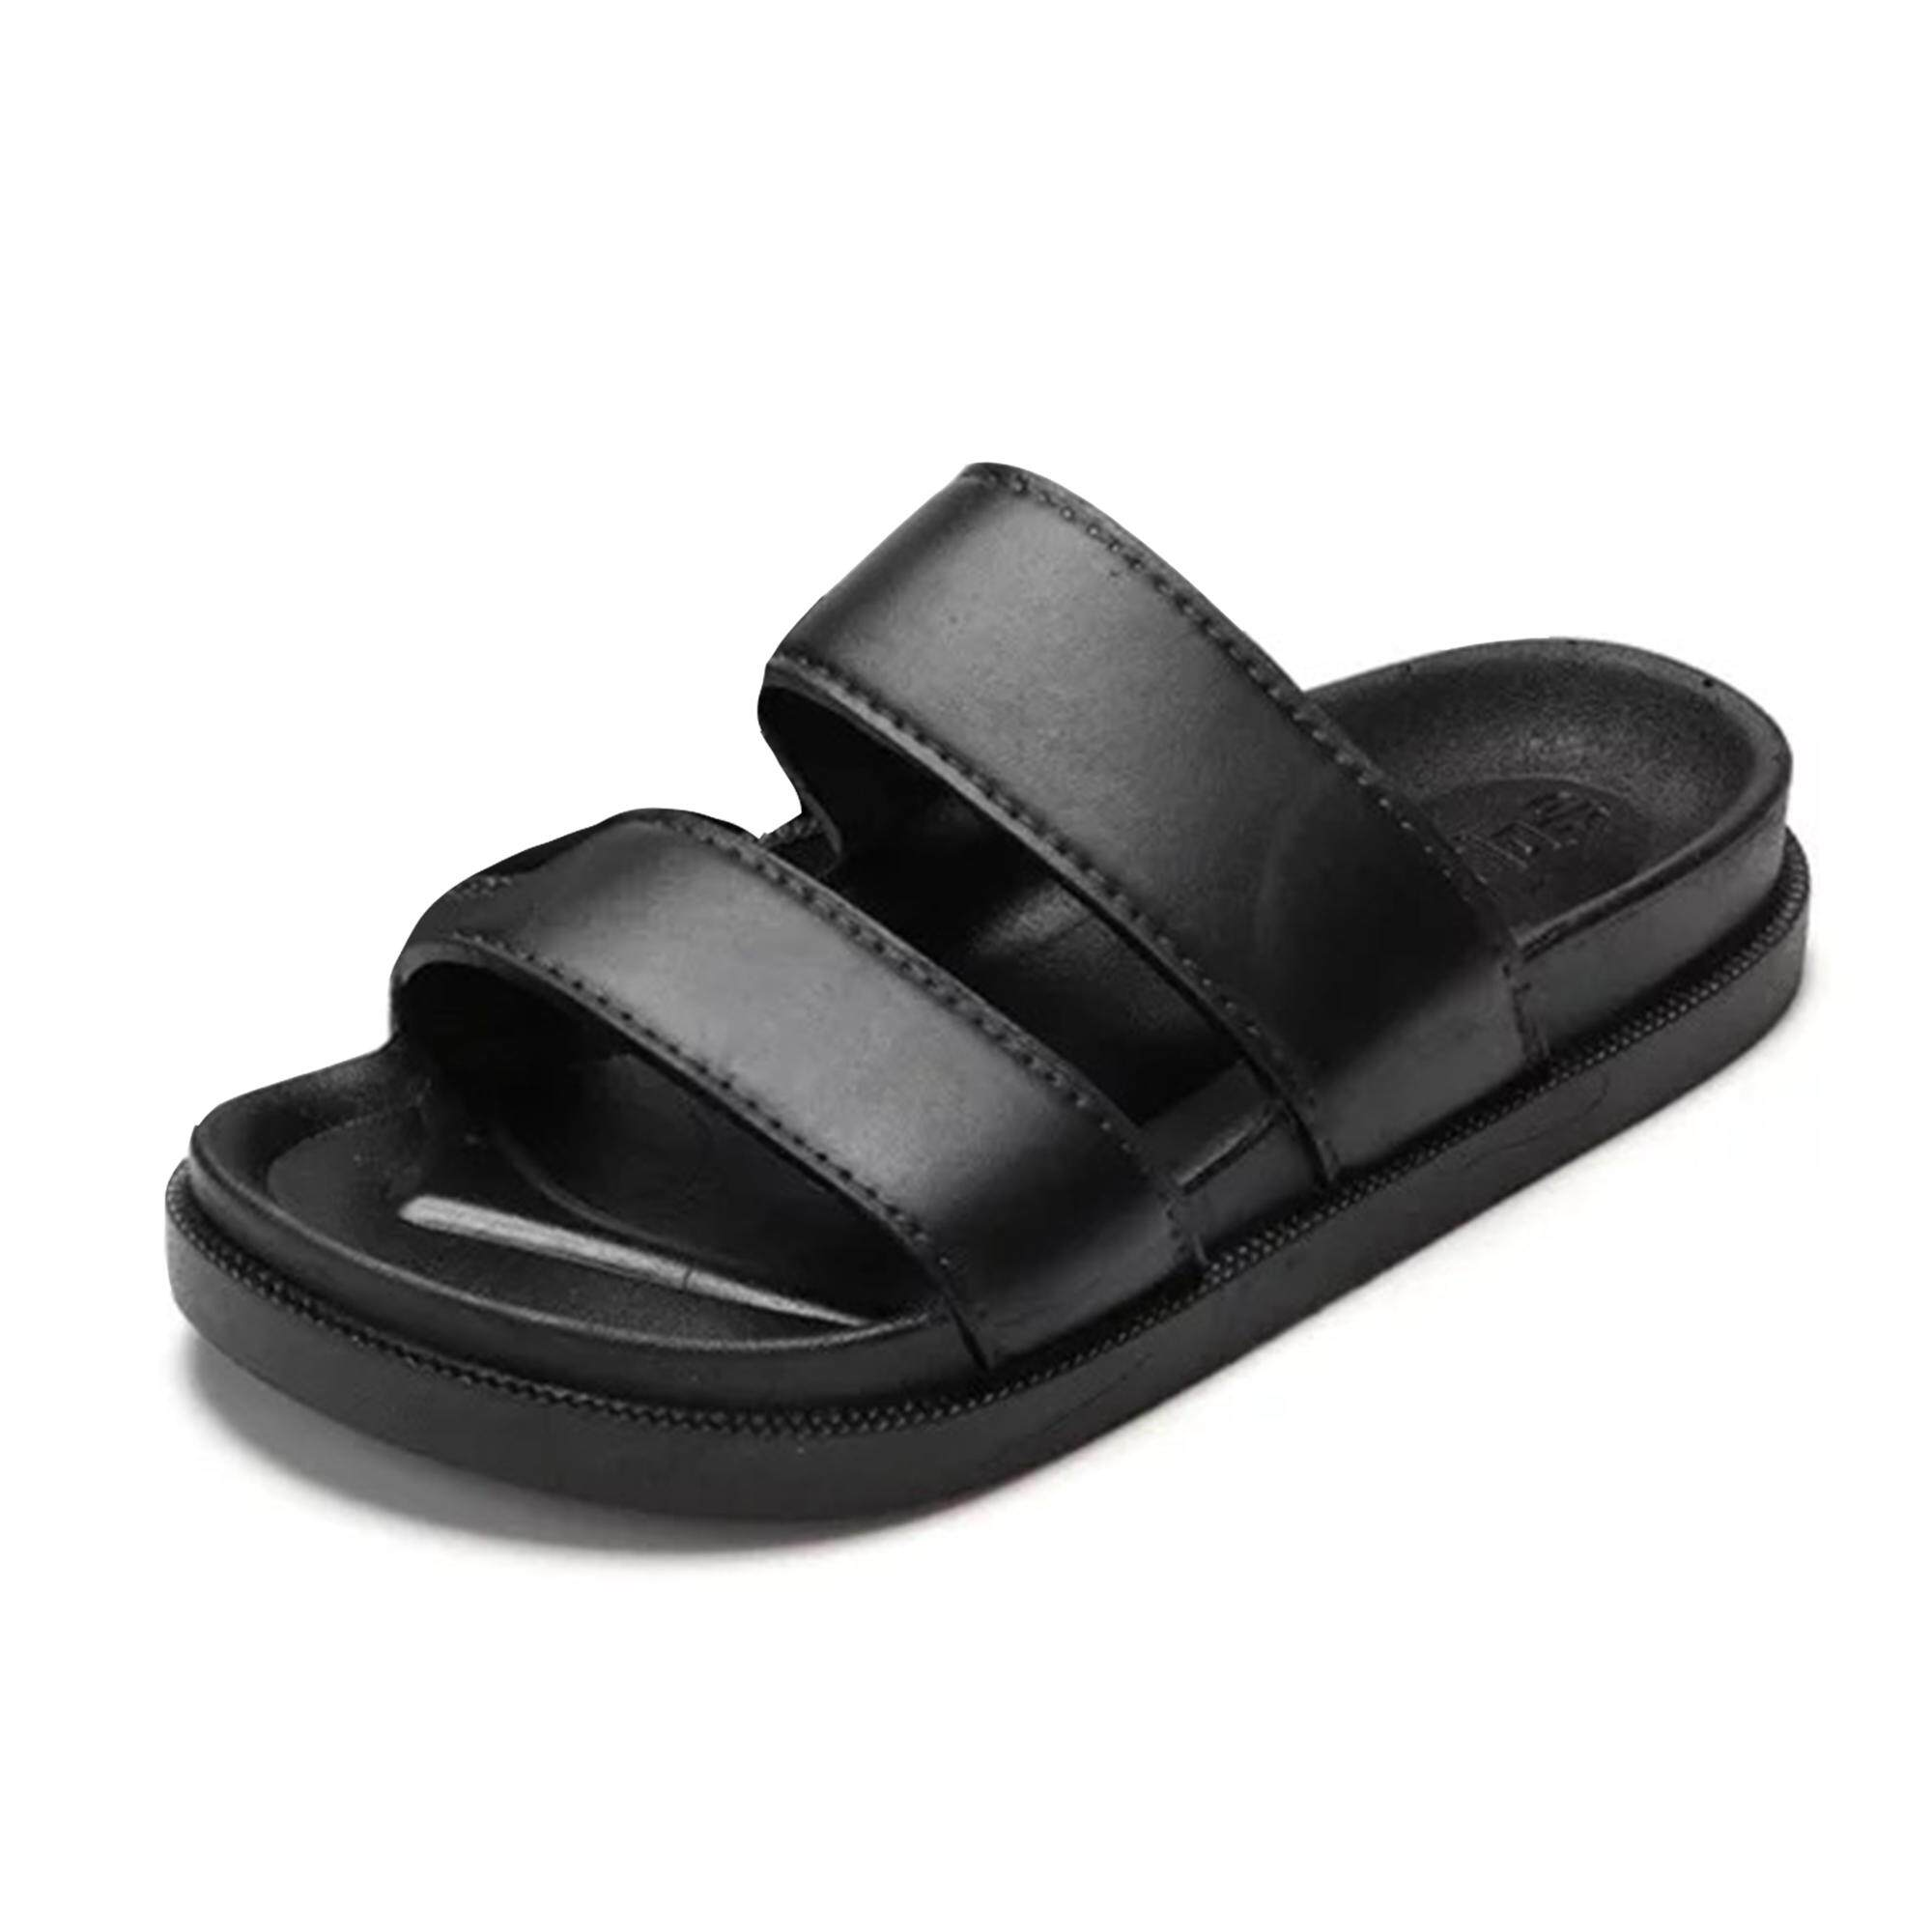 05540db60 Buy Sandals for Women Online at Best Prices in Malaysia | Lazada.com.my